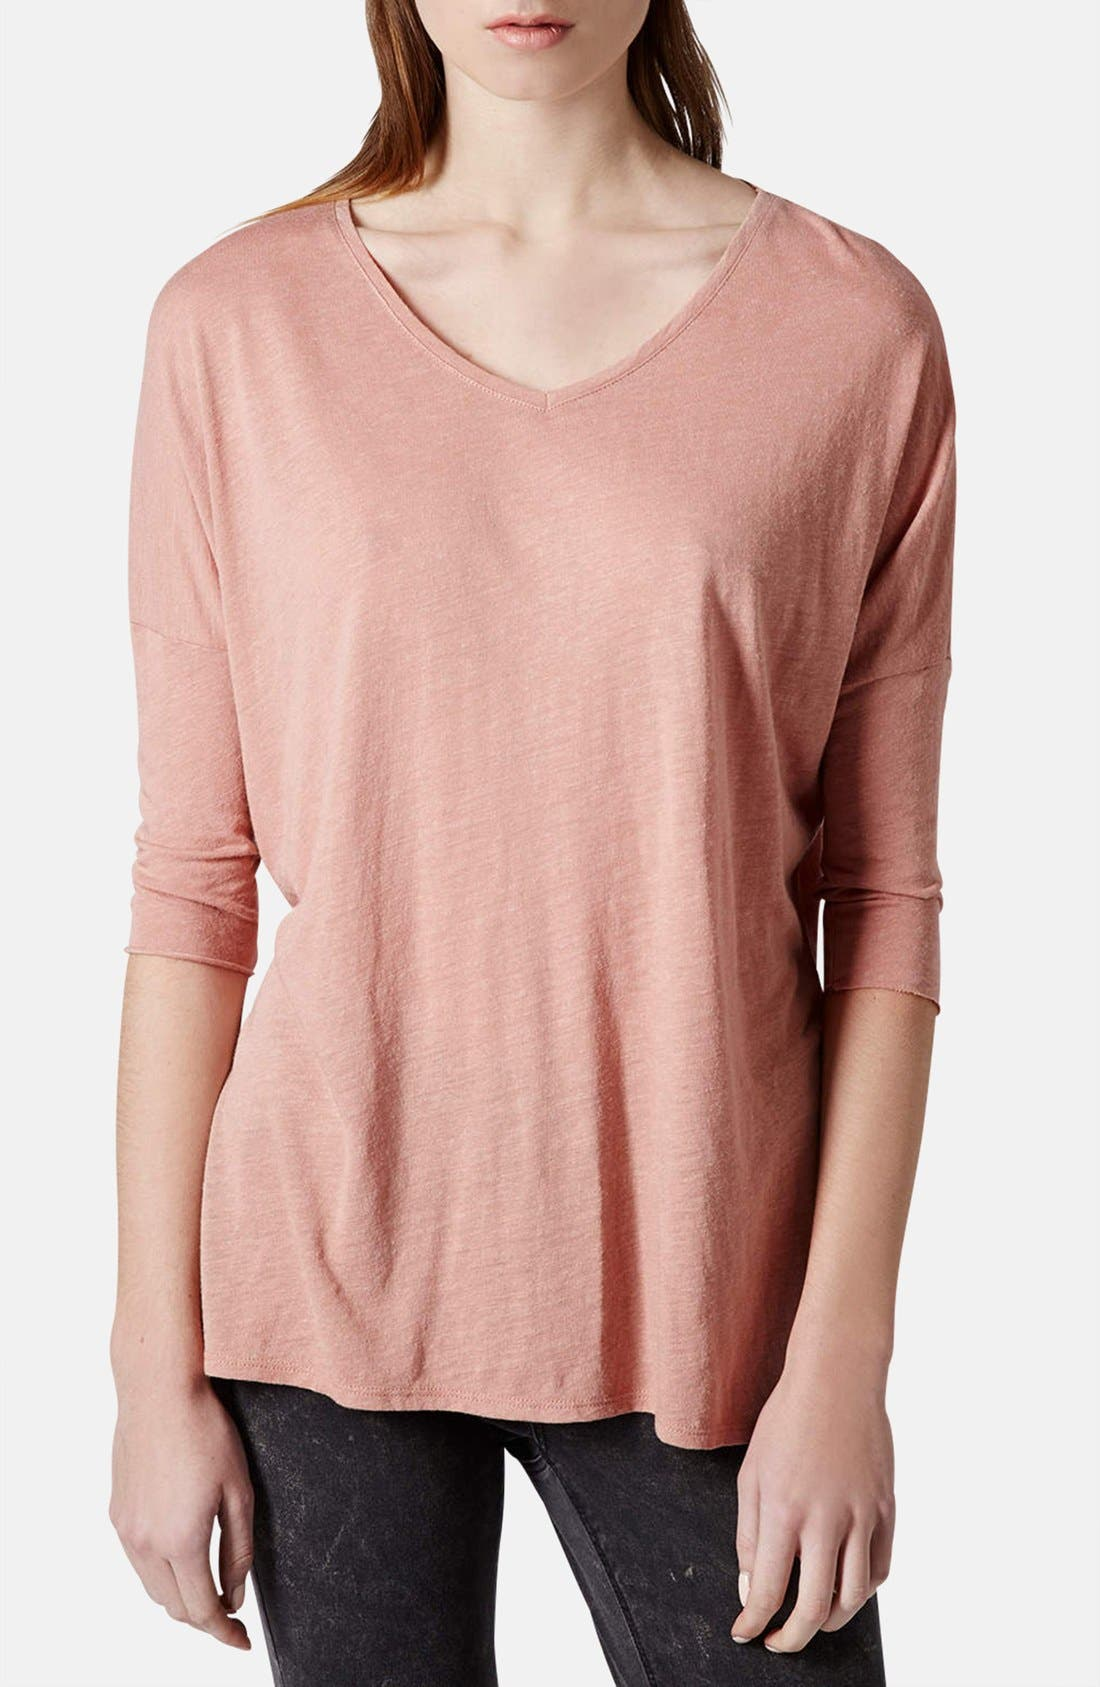 Alternate Image 1 Selected - Topshop Textured V-Neck Tunic Top (Petite)